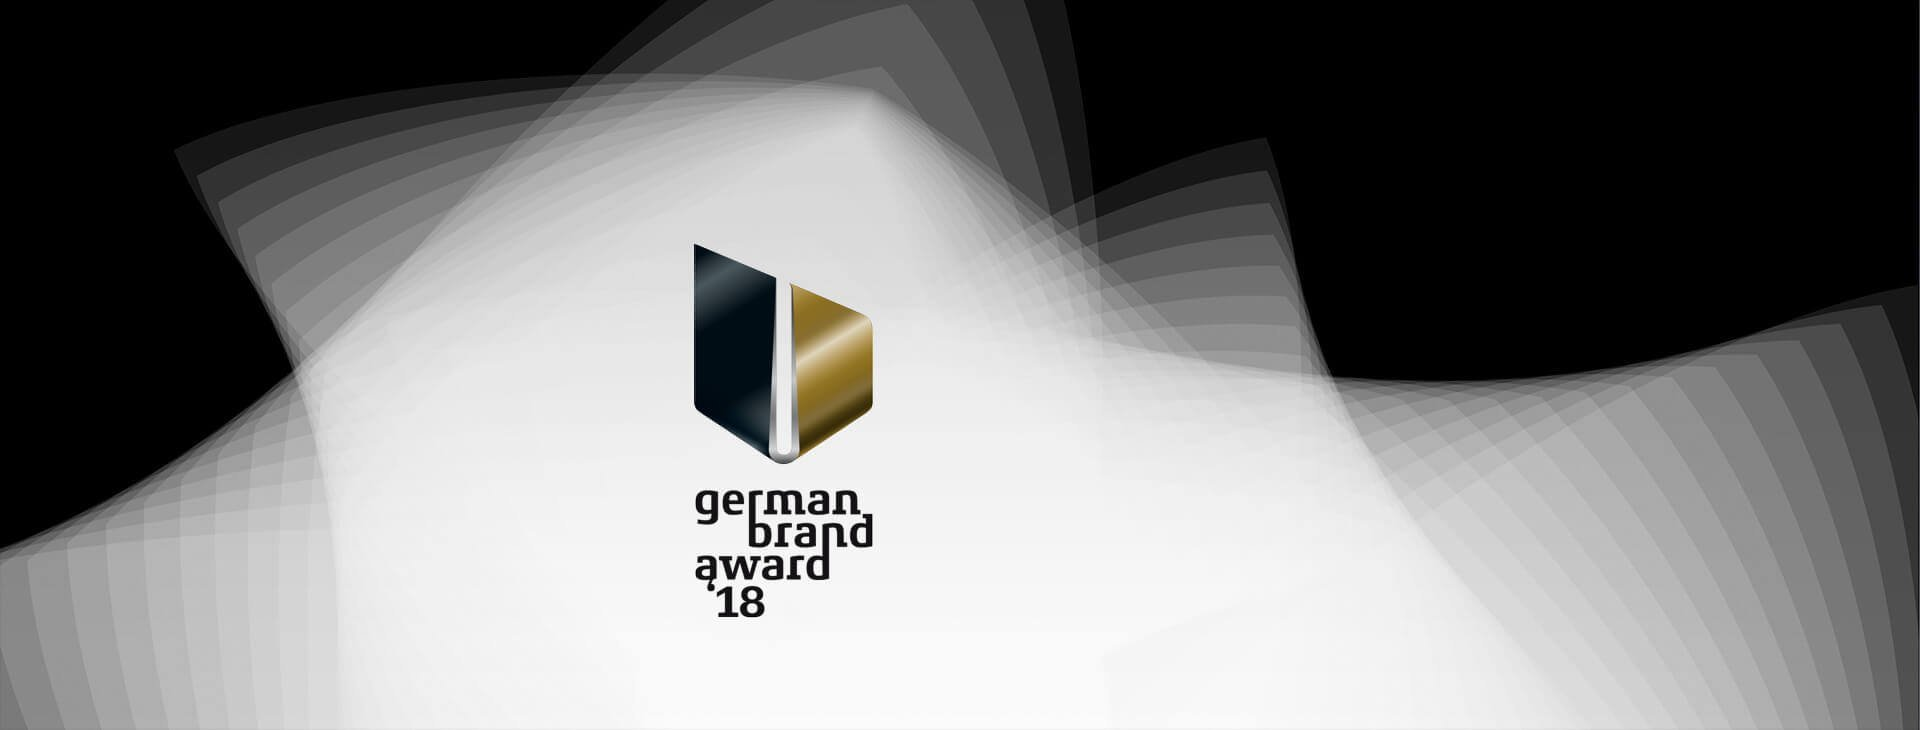 stilwerk_german_brand_award_2018_stage